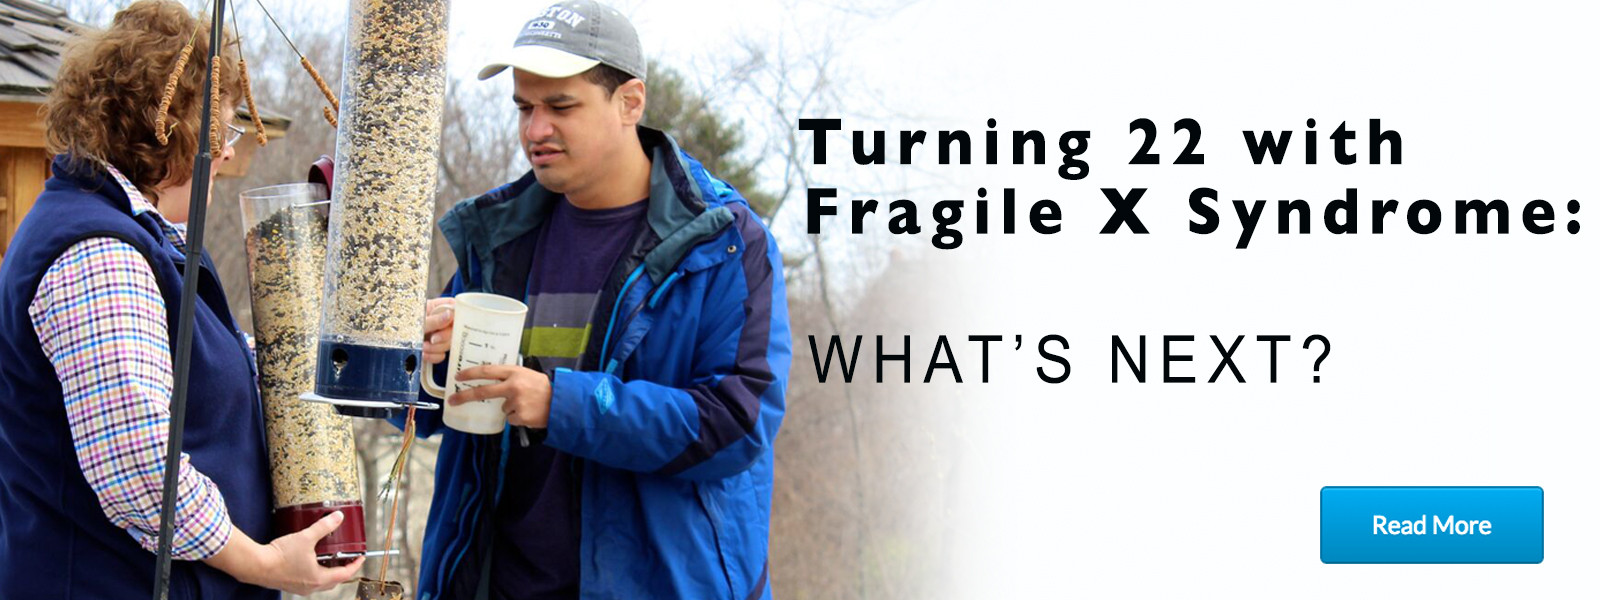 Fragile X adults - what's next?